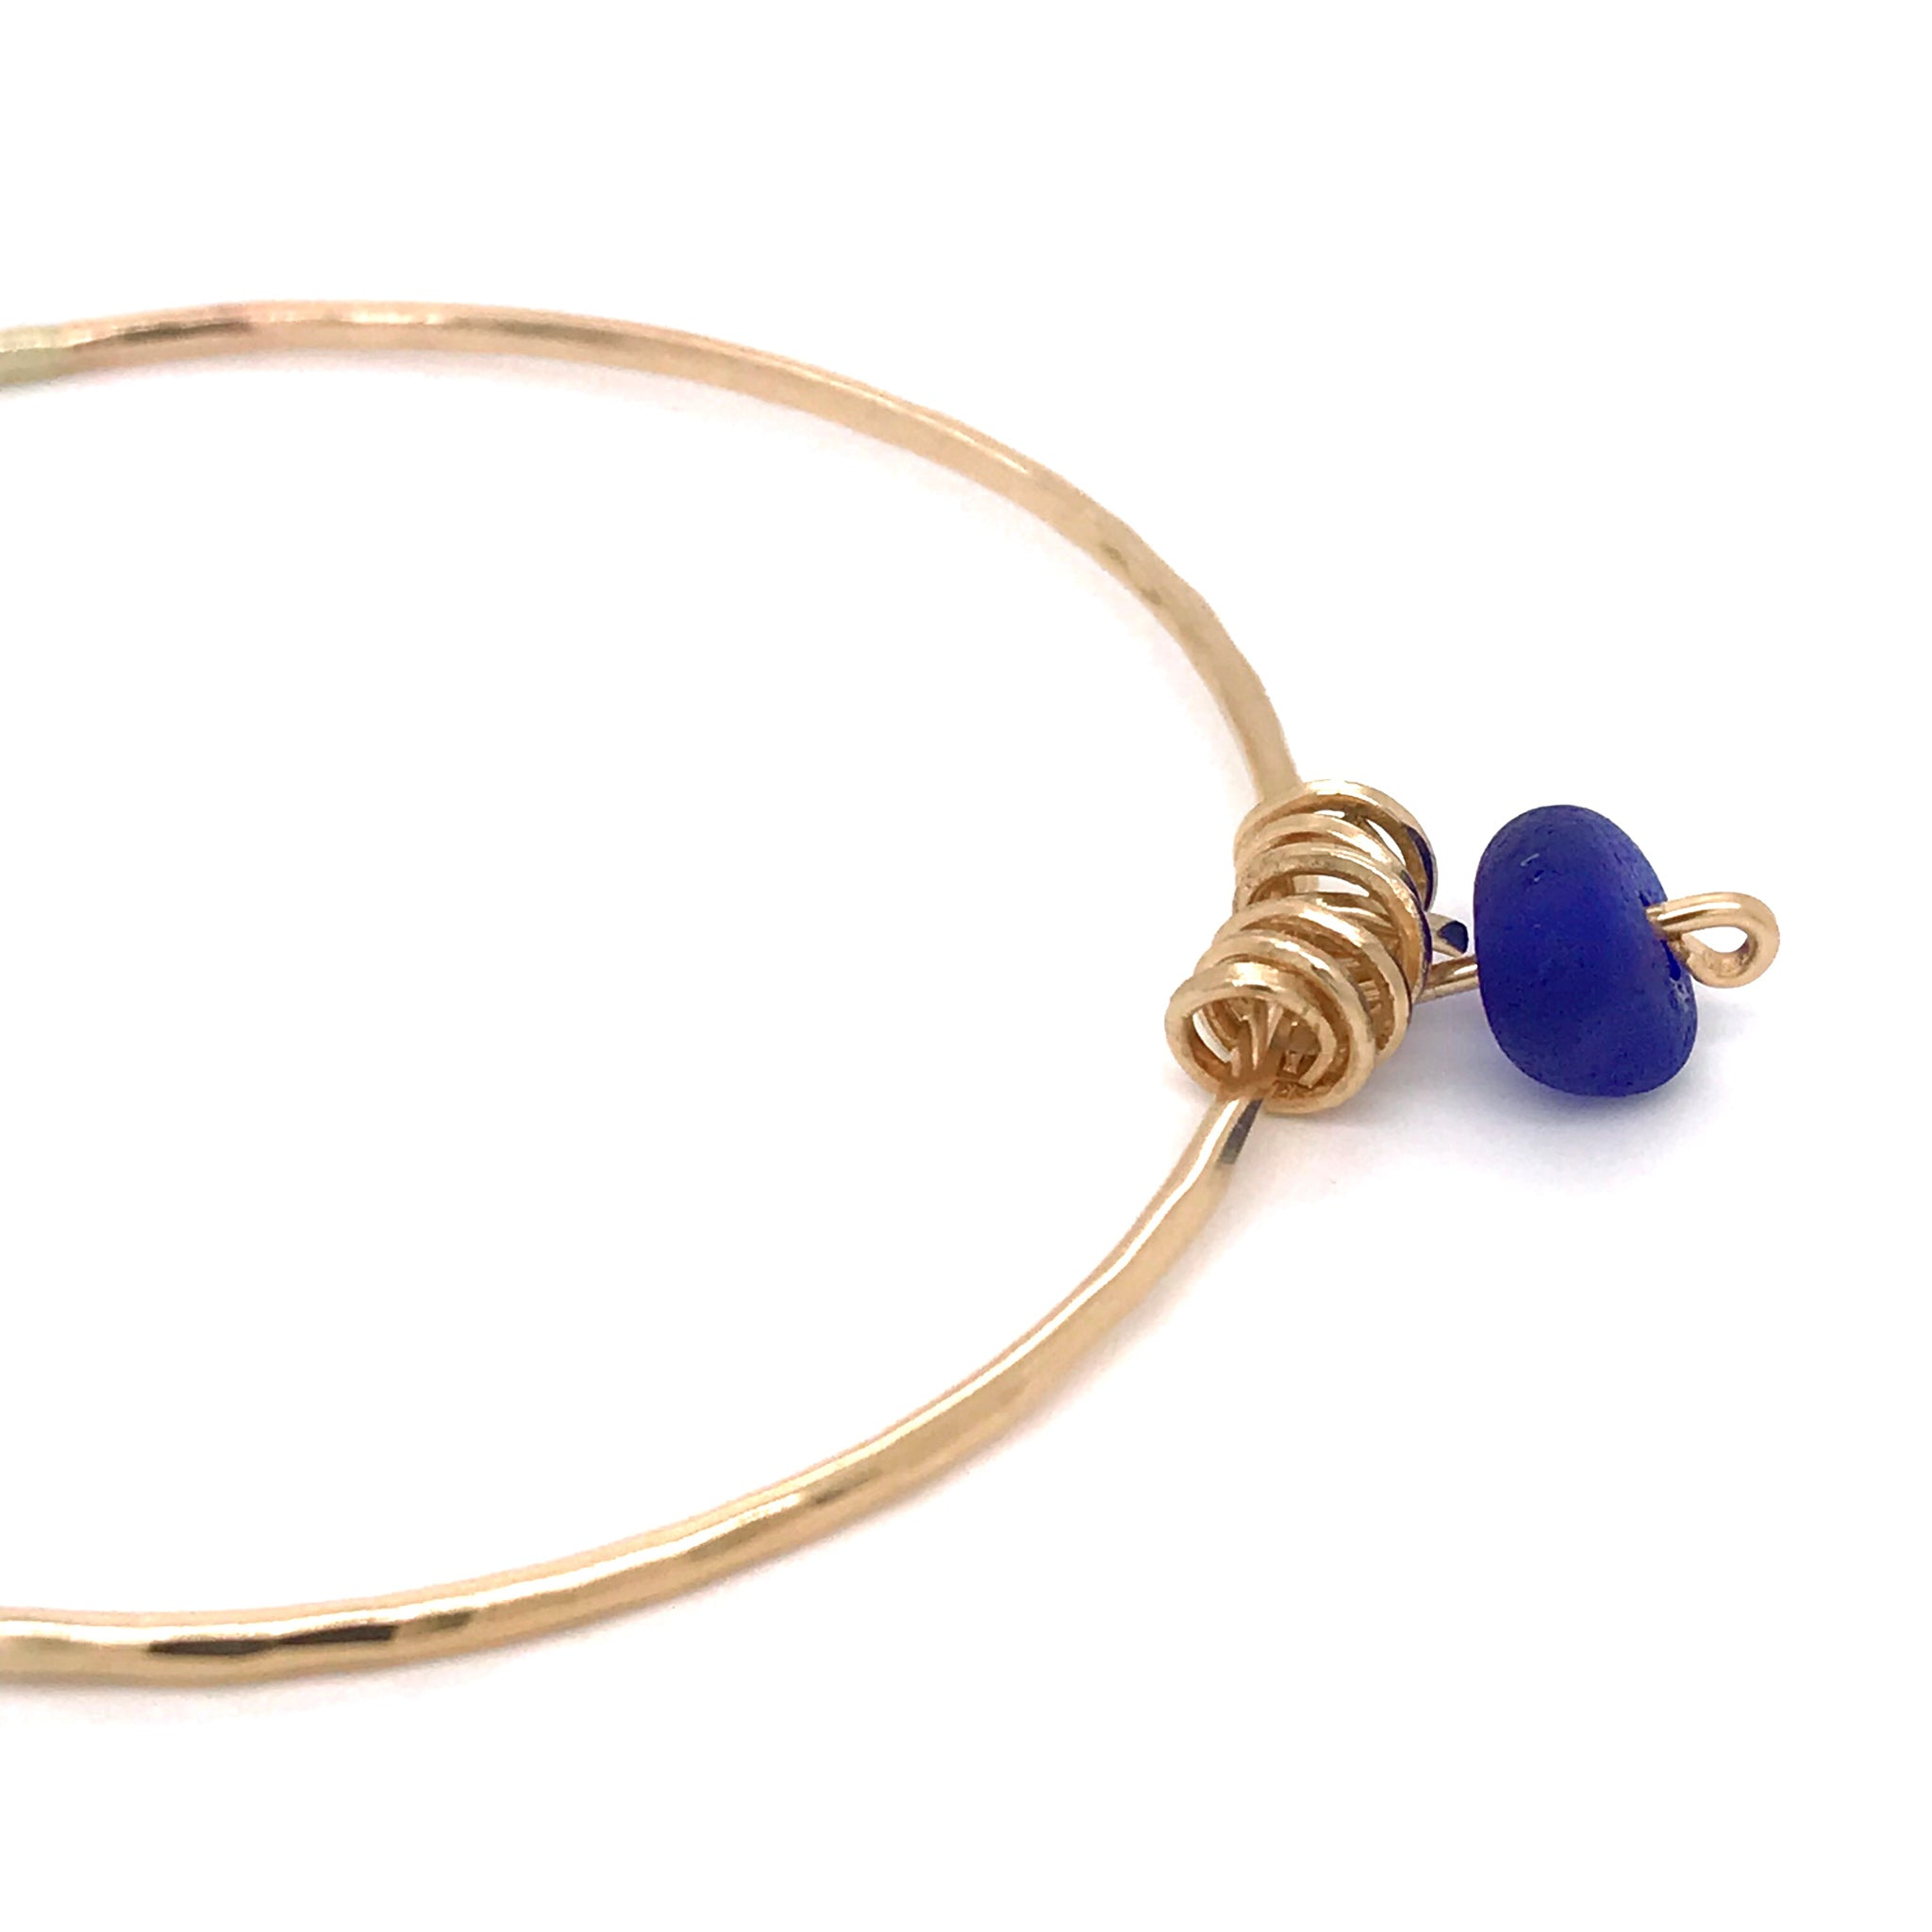 Cobalt Blue Seaglass Bangle - Gold - kriket-broadhurst jewellery